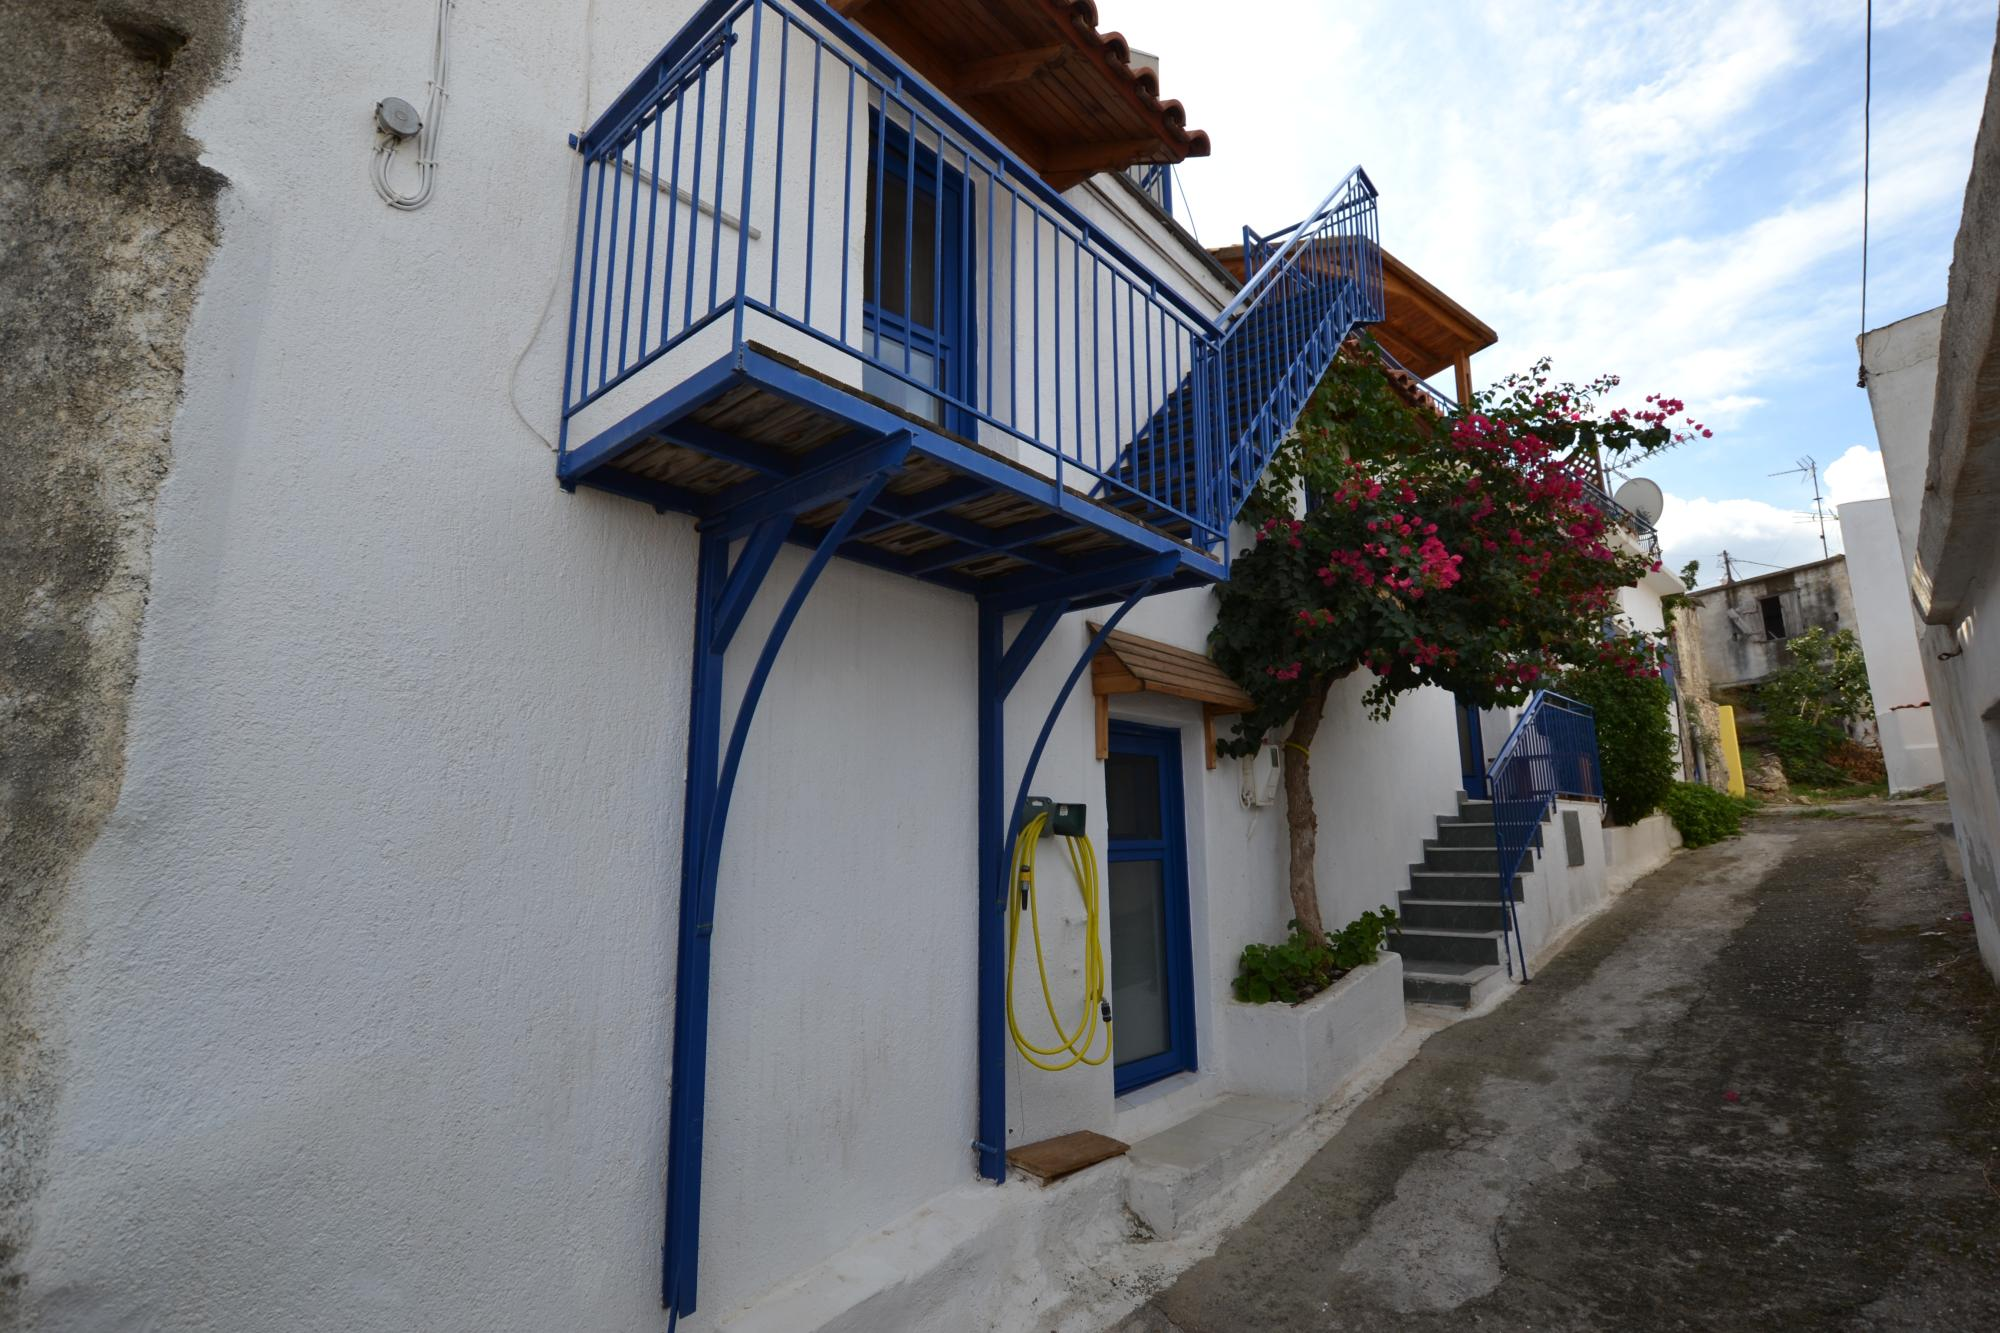 2 bedroom renovated stone house with roof terrace. Sea Views /close to beaches.